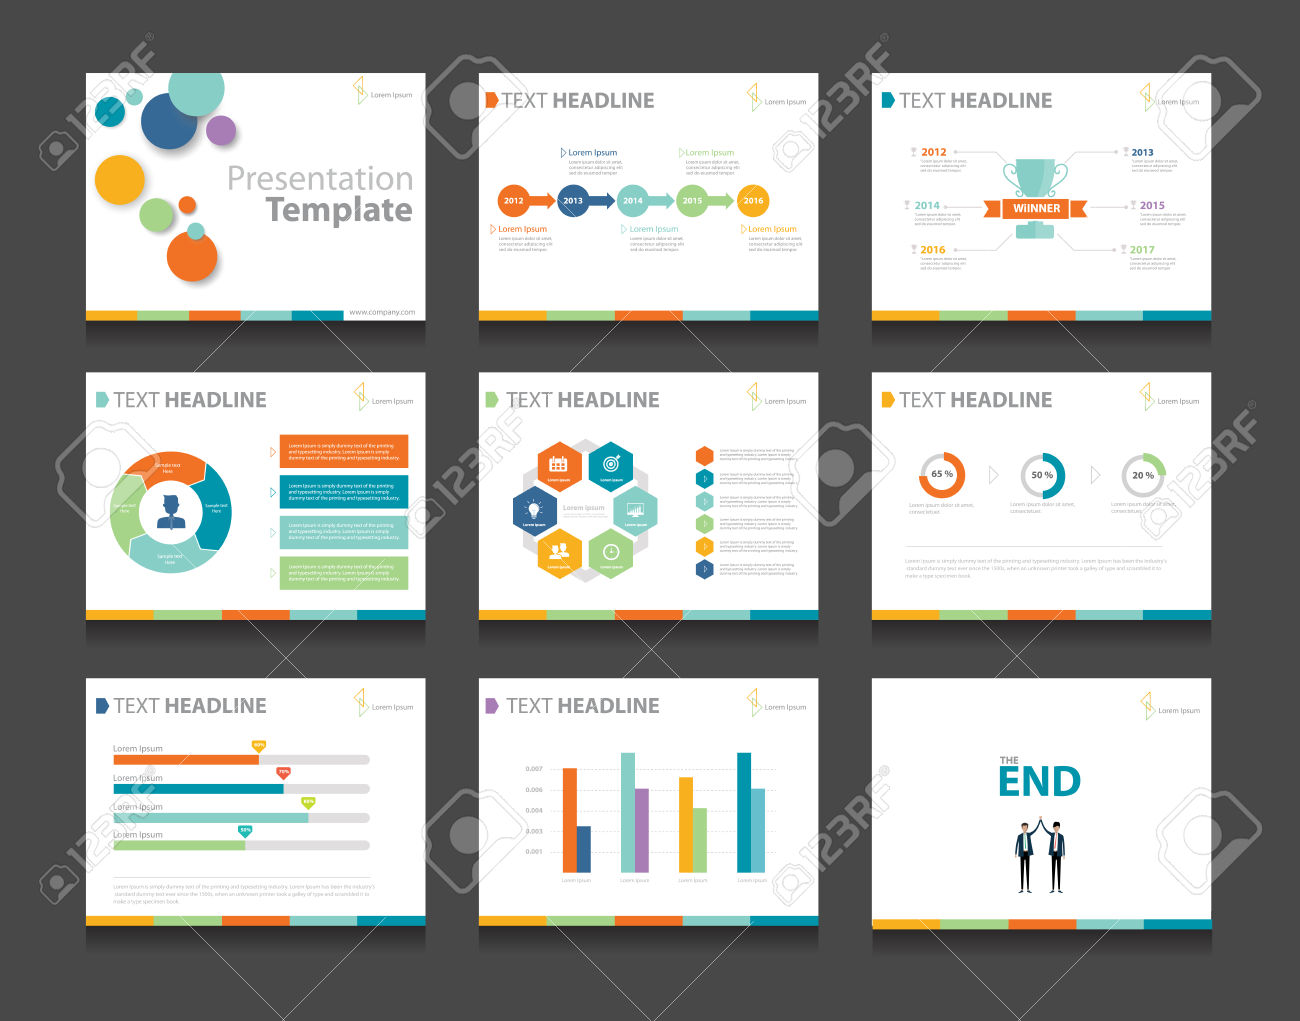 What Are the Best PowerPoint Fonts for Killer Presentations?